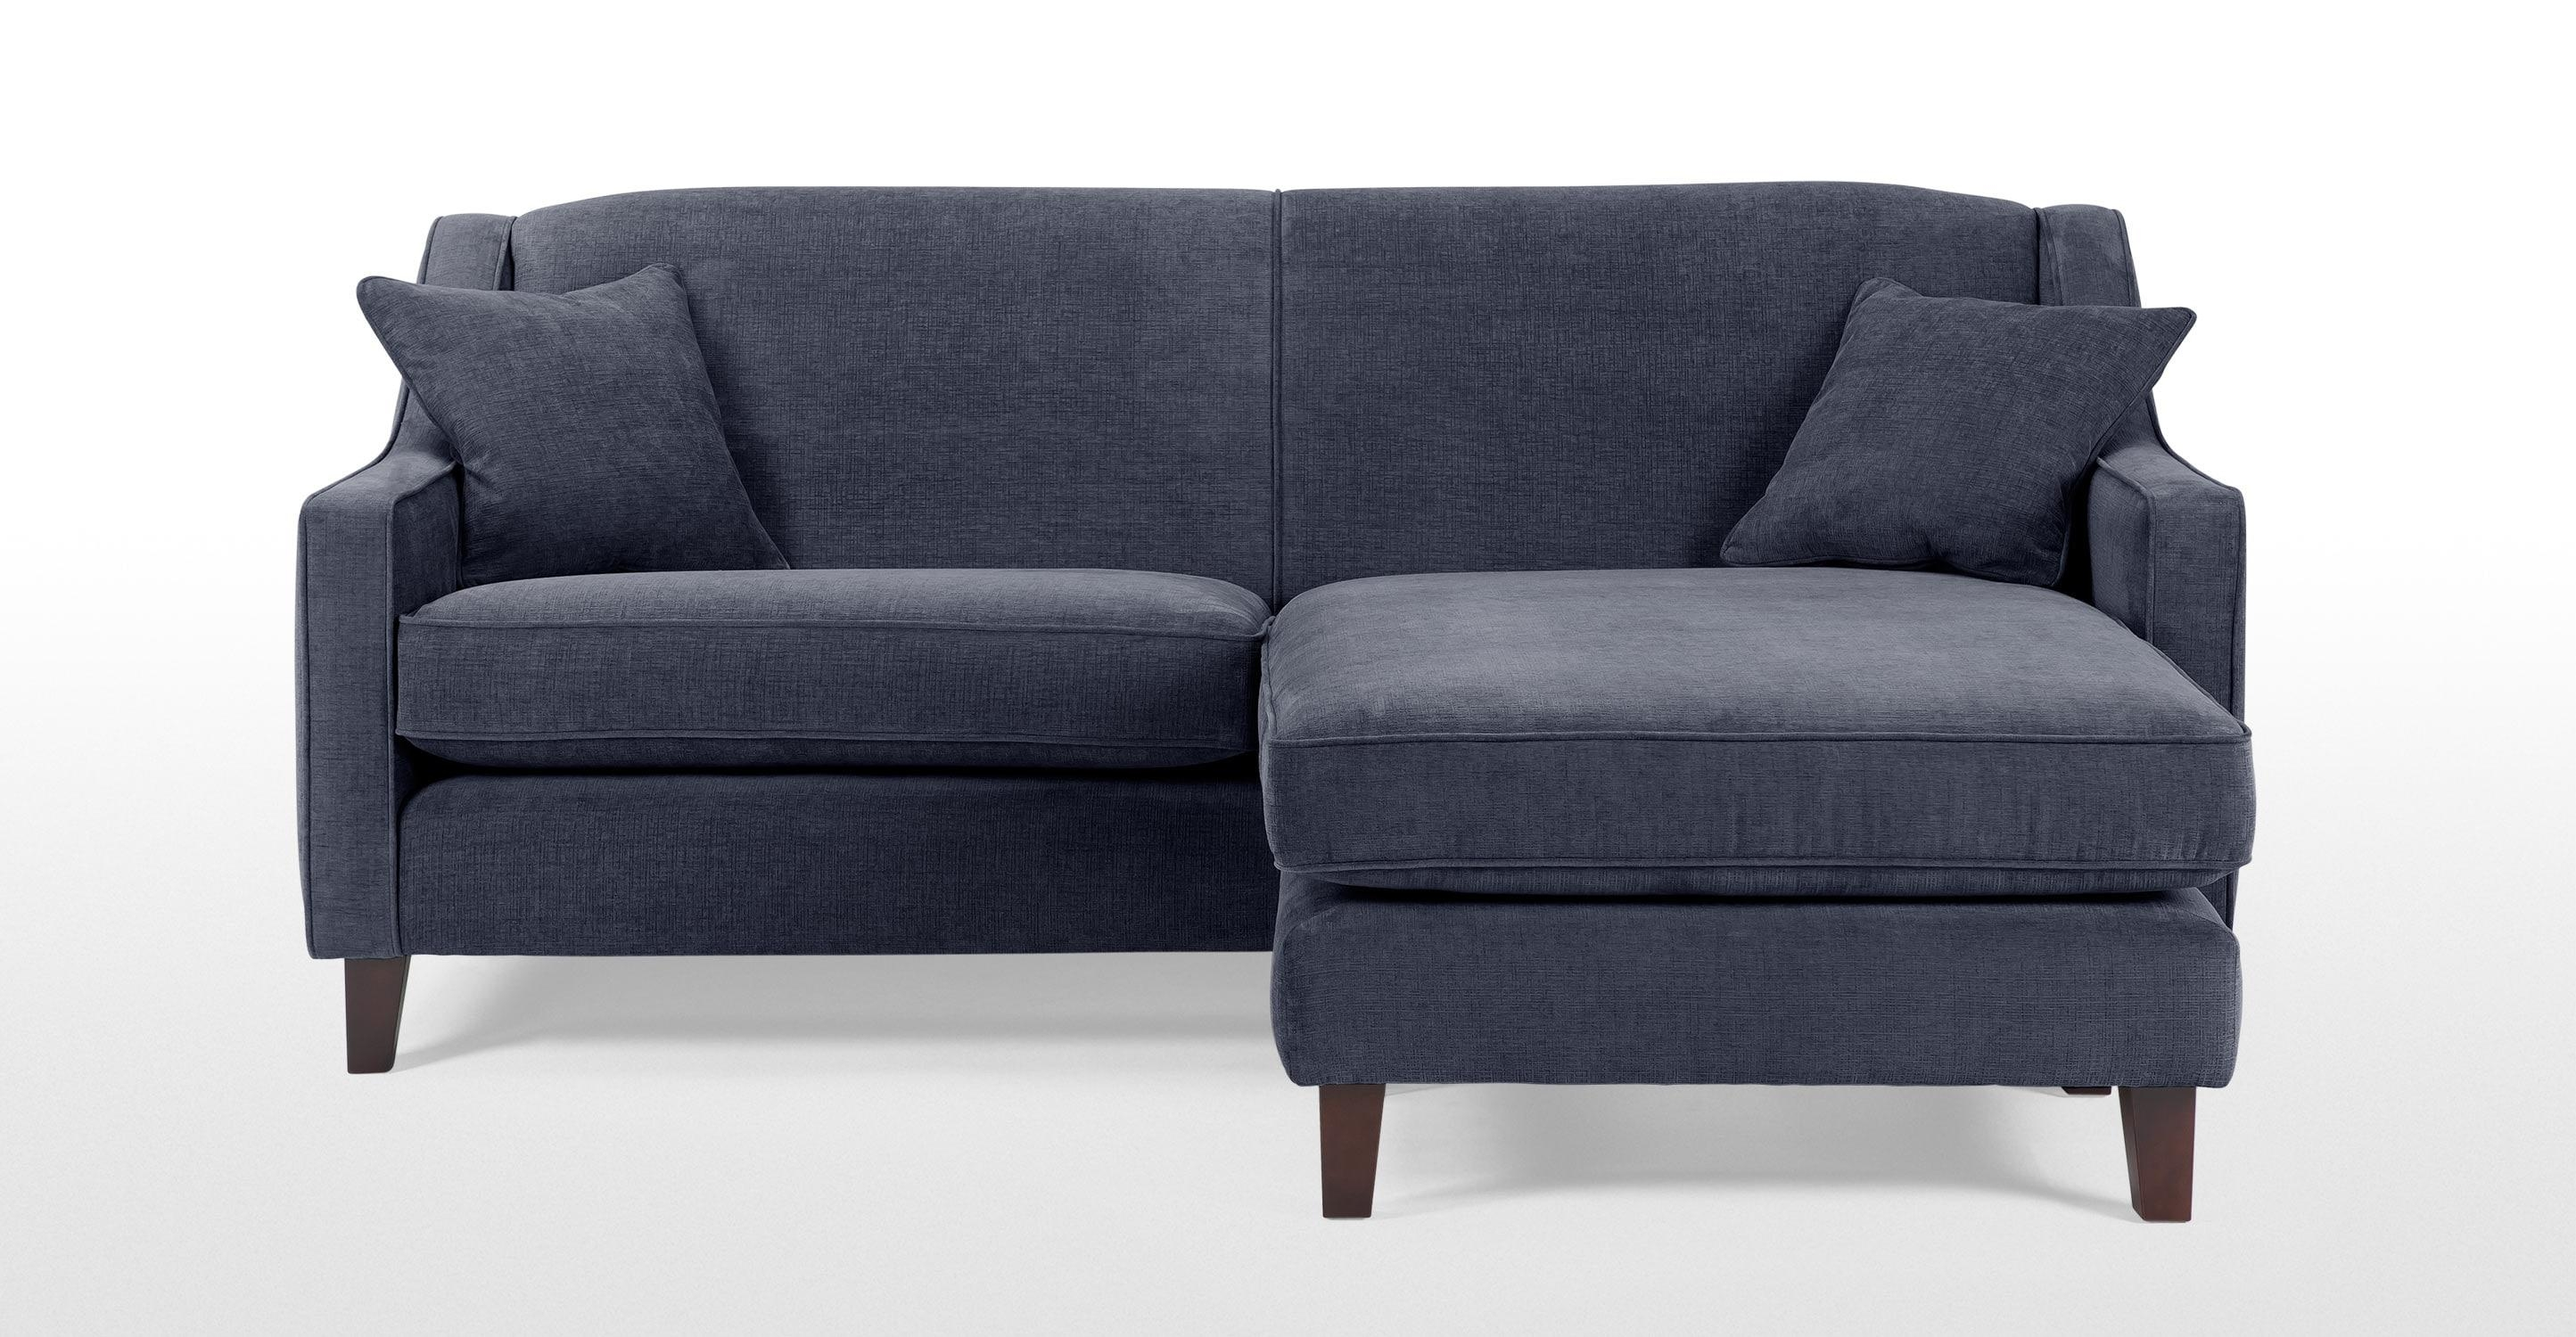 Halston Corner Sofa In Midnight Blue | Made Inside Midnight Blue Sofas (View 11 of 20)